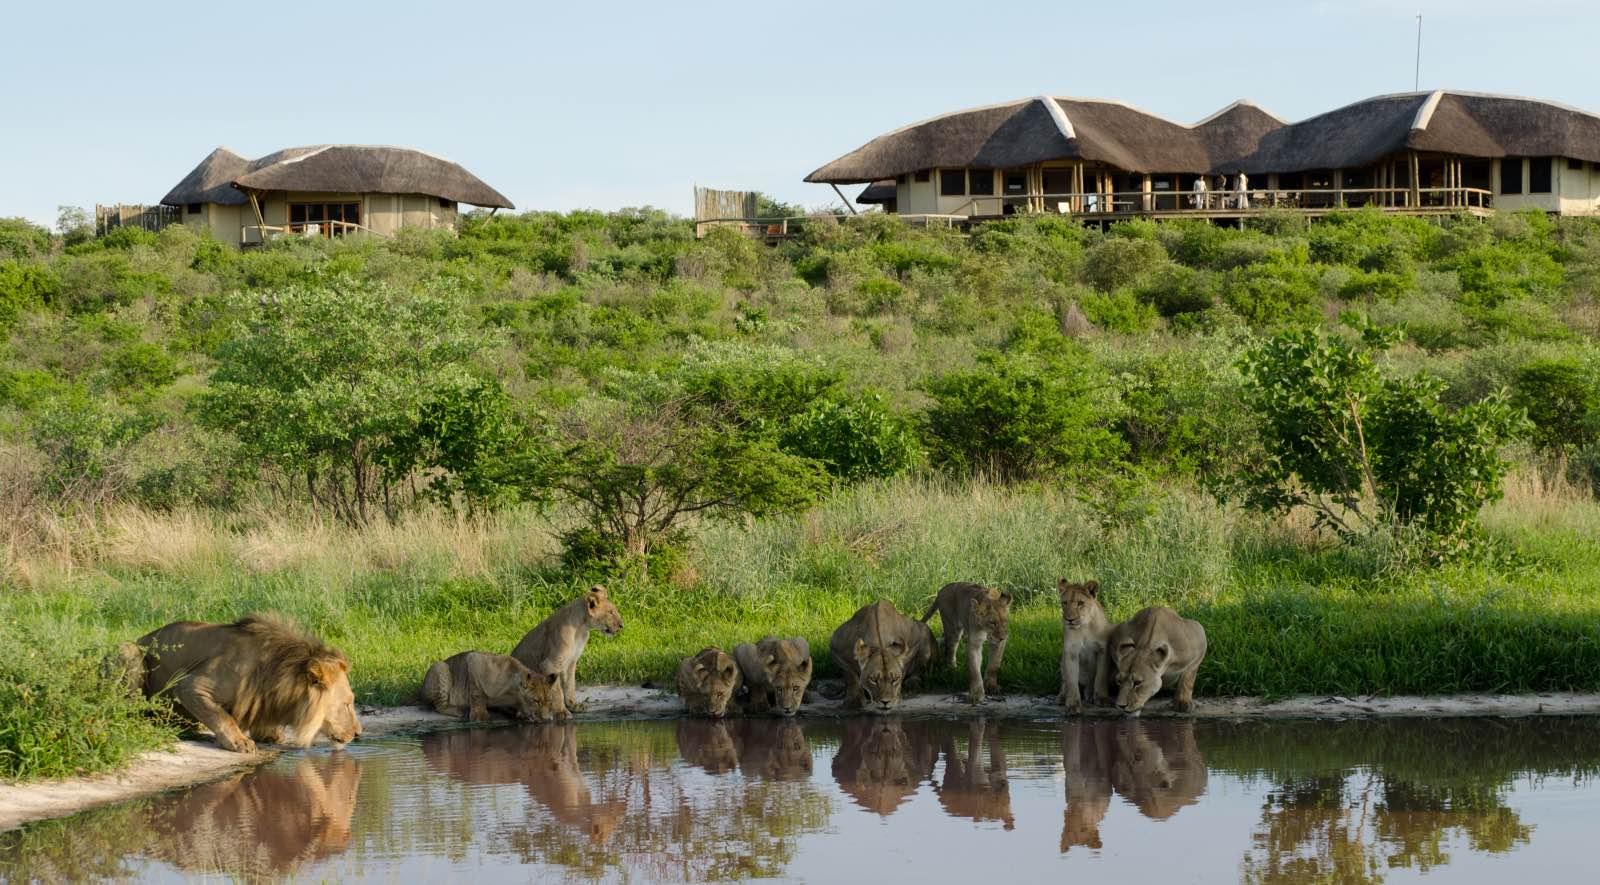 Pride of lions drinking at the pan in front of Tau Pan Camp - exactly why this Kalahari lodge was given its name